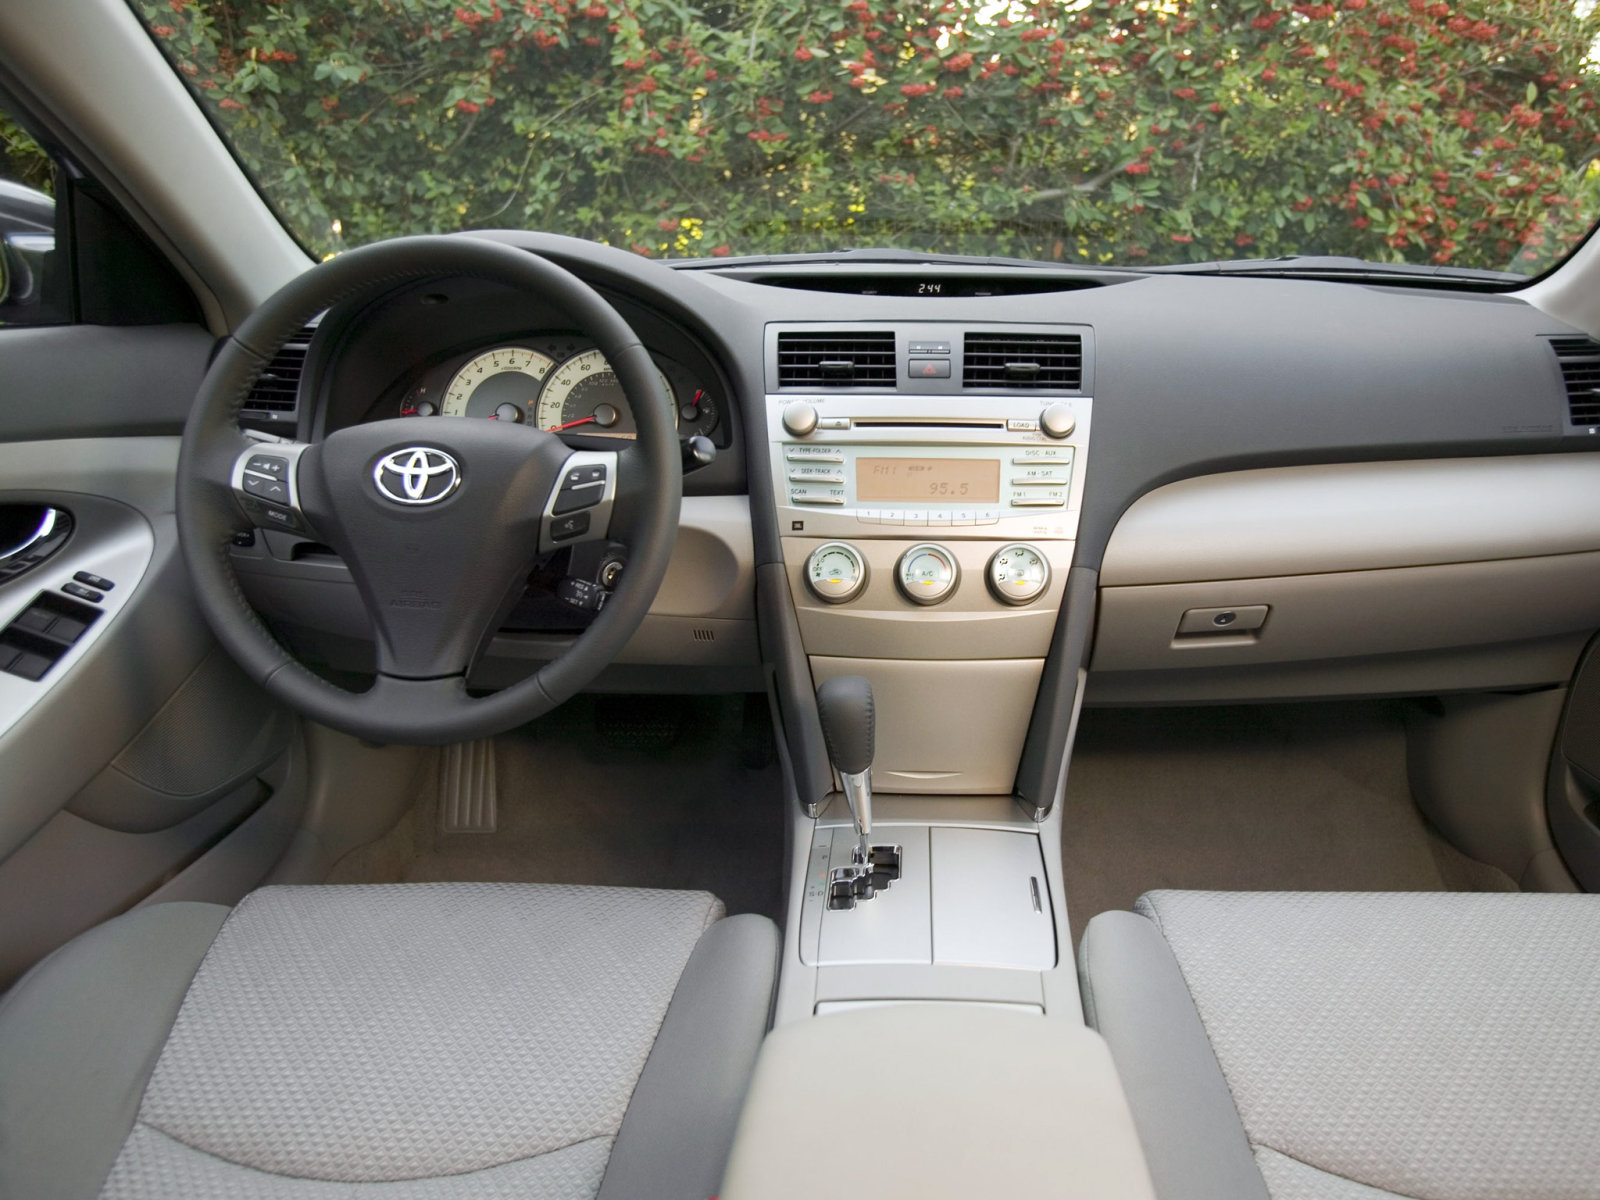 2007 Toyota Camry Photo Gallery.